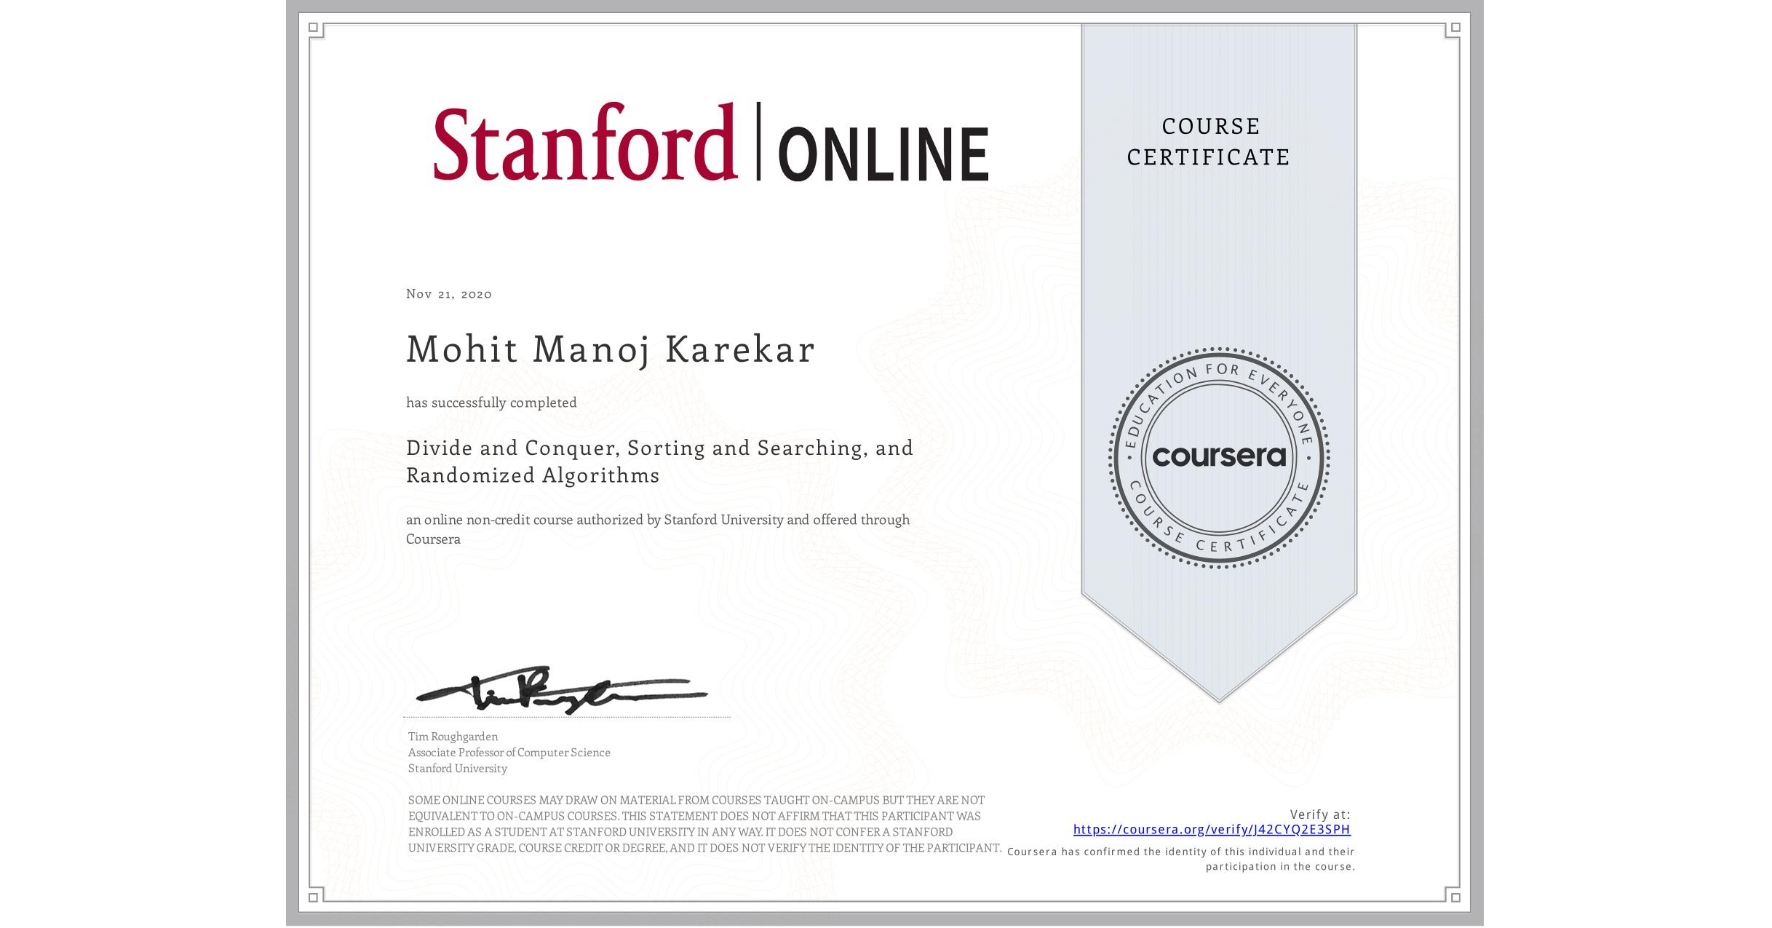 View certificate for Mohit Manoj Karekar, Divide and Conquer, Sorting and Searching, and Randomized Algorithms, an online non-credit course authorized by Stanford University and offered through Coursera